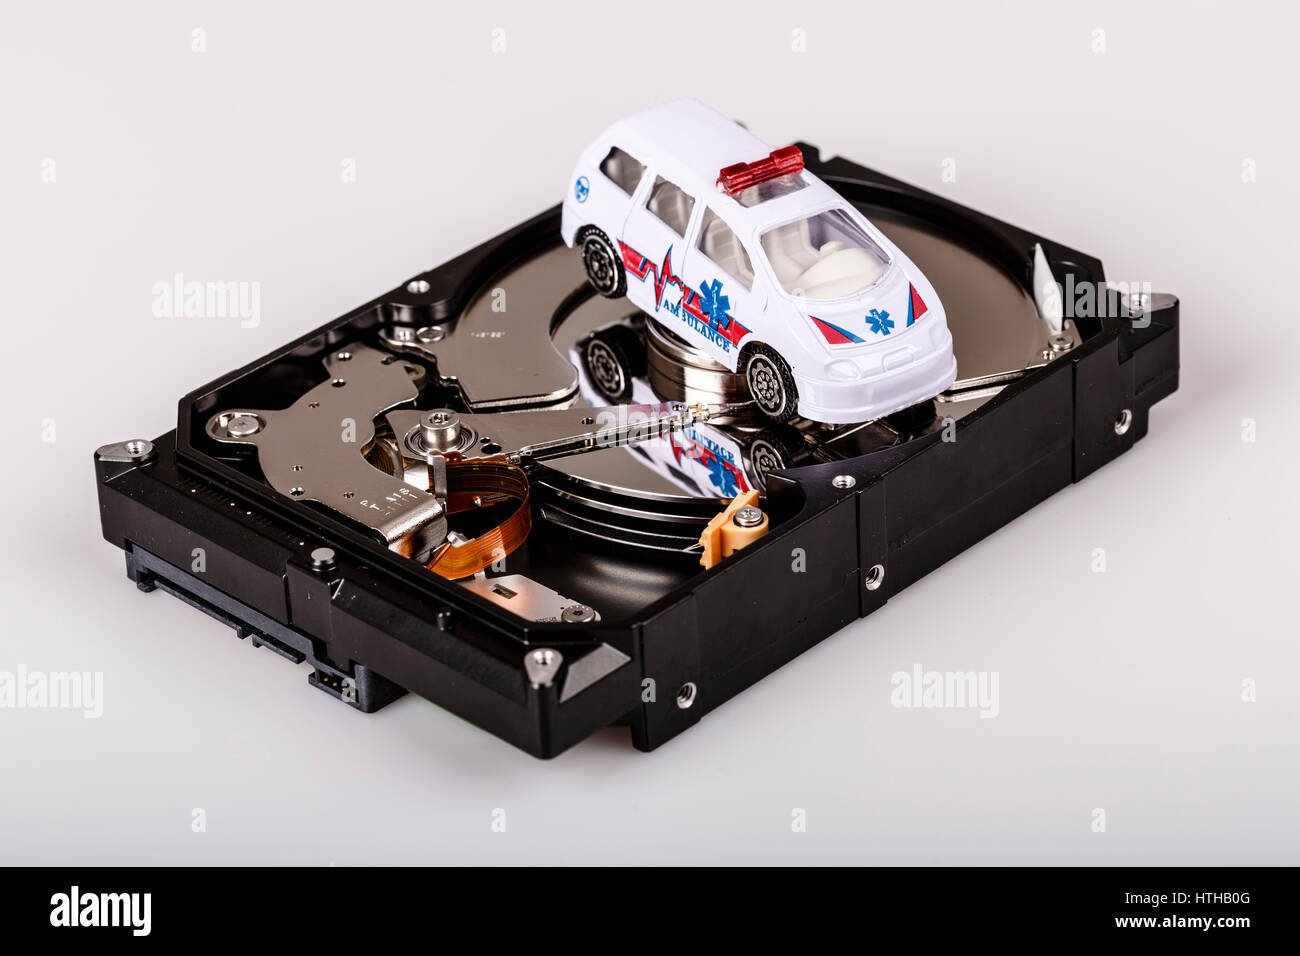 ambulance car on harddrive or hdd - data backup, safe and rescue concept - Stock Image